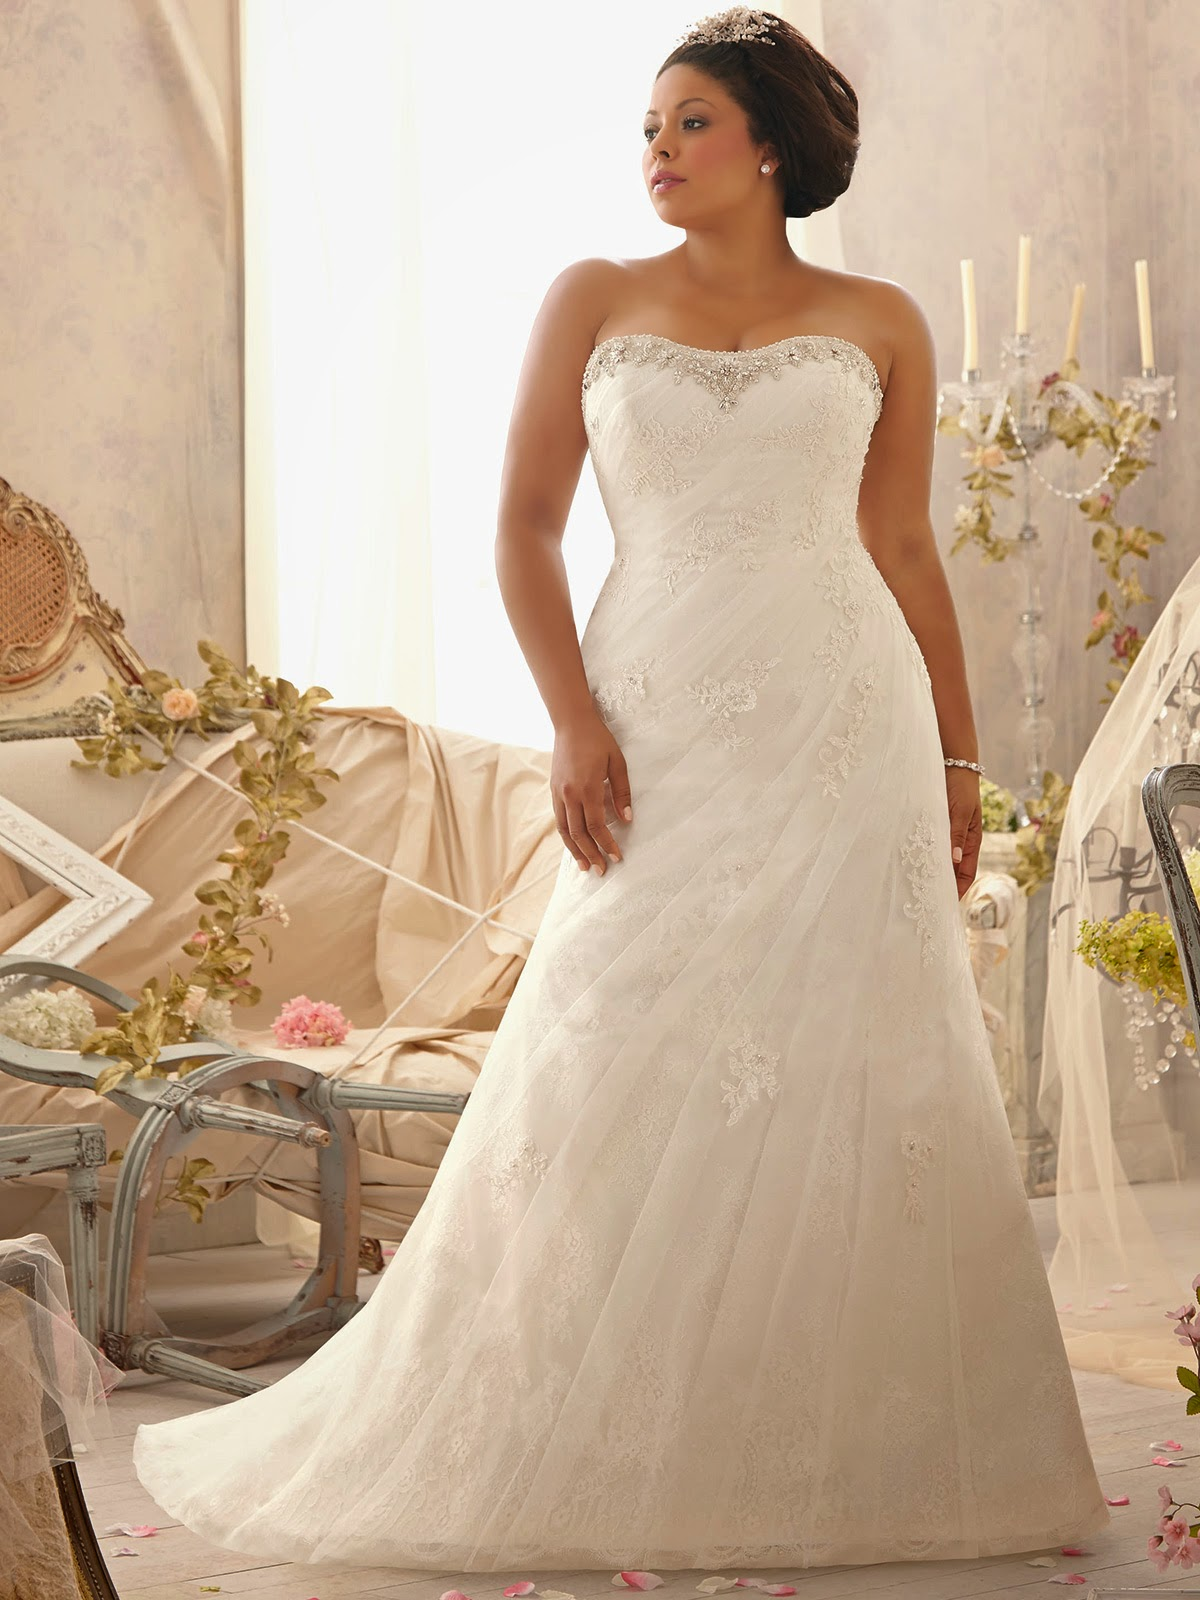 Busty Brides Plus Size Wedding Gowns Bridal Wedding And Prom Ideas